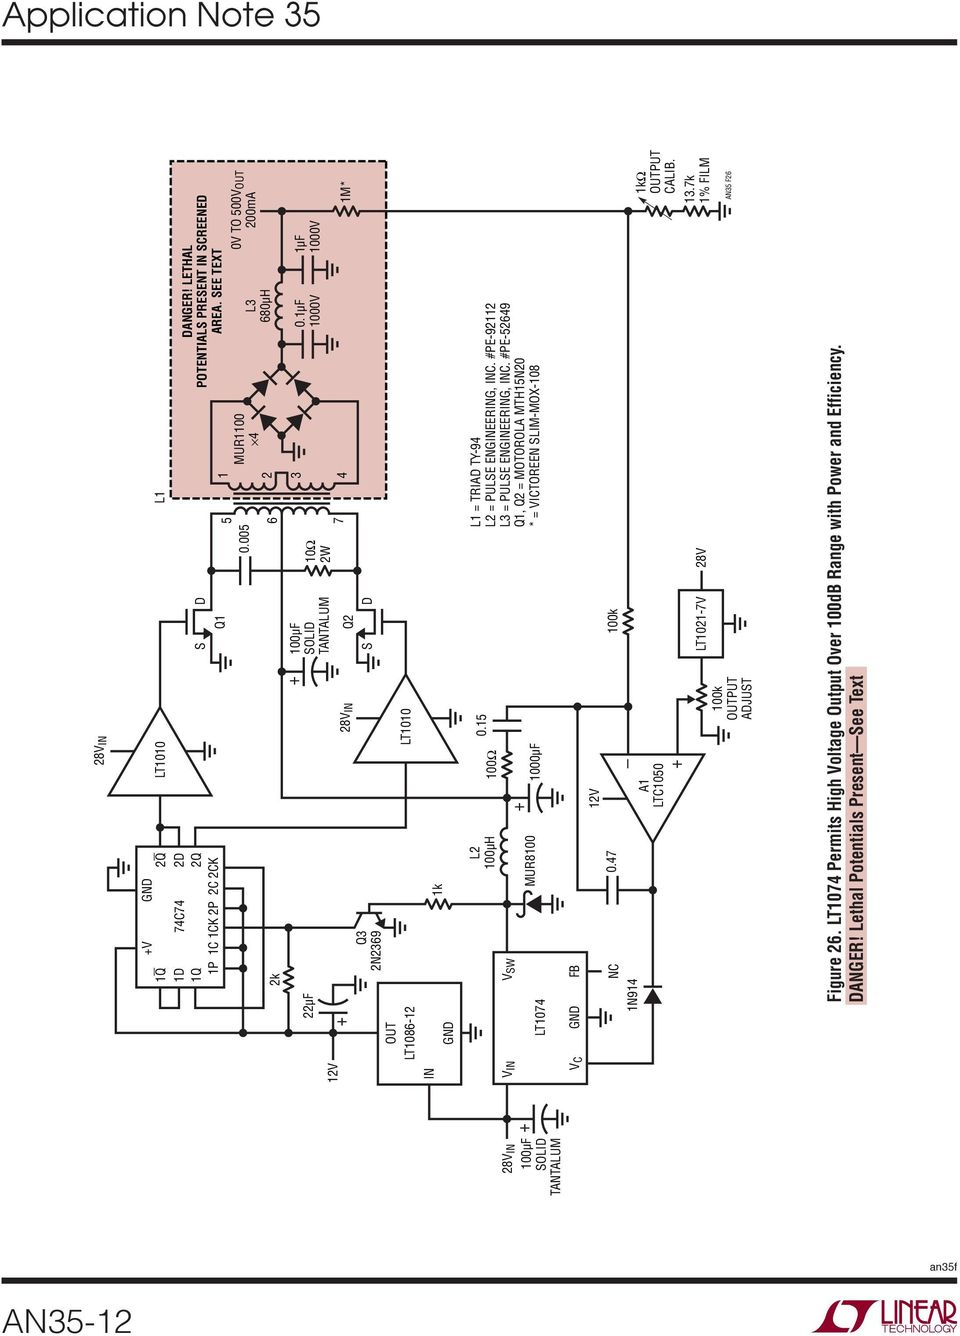 Application Note 35 August Step Down Switching Regulators An35 1 Circuit Schematic Electronics Voltage Regulator With Lt1086 15 1000f L1 Triad Ty 94 L2 Pulse Engineering Inc